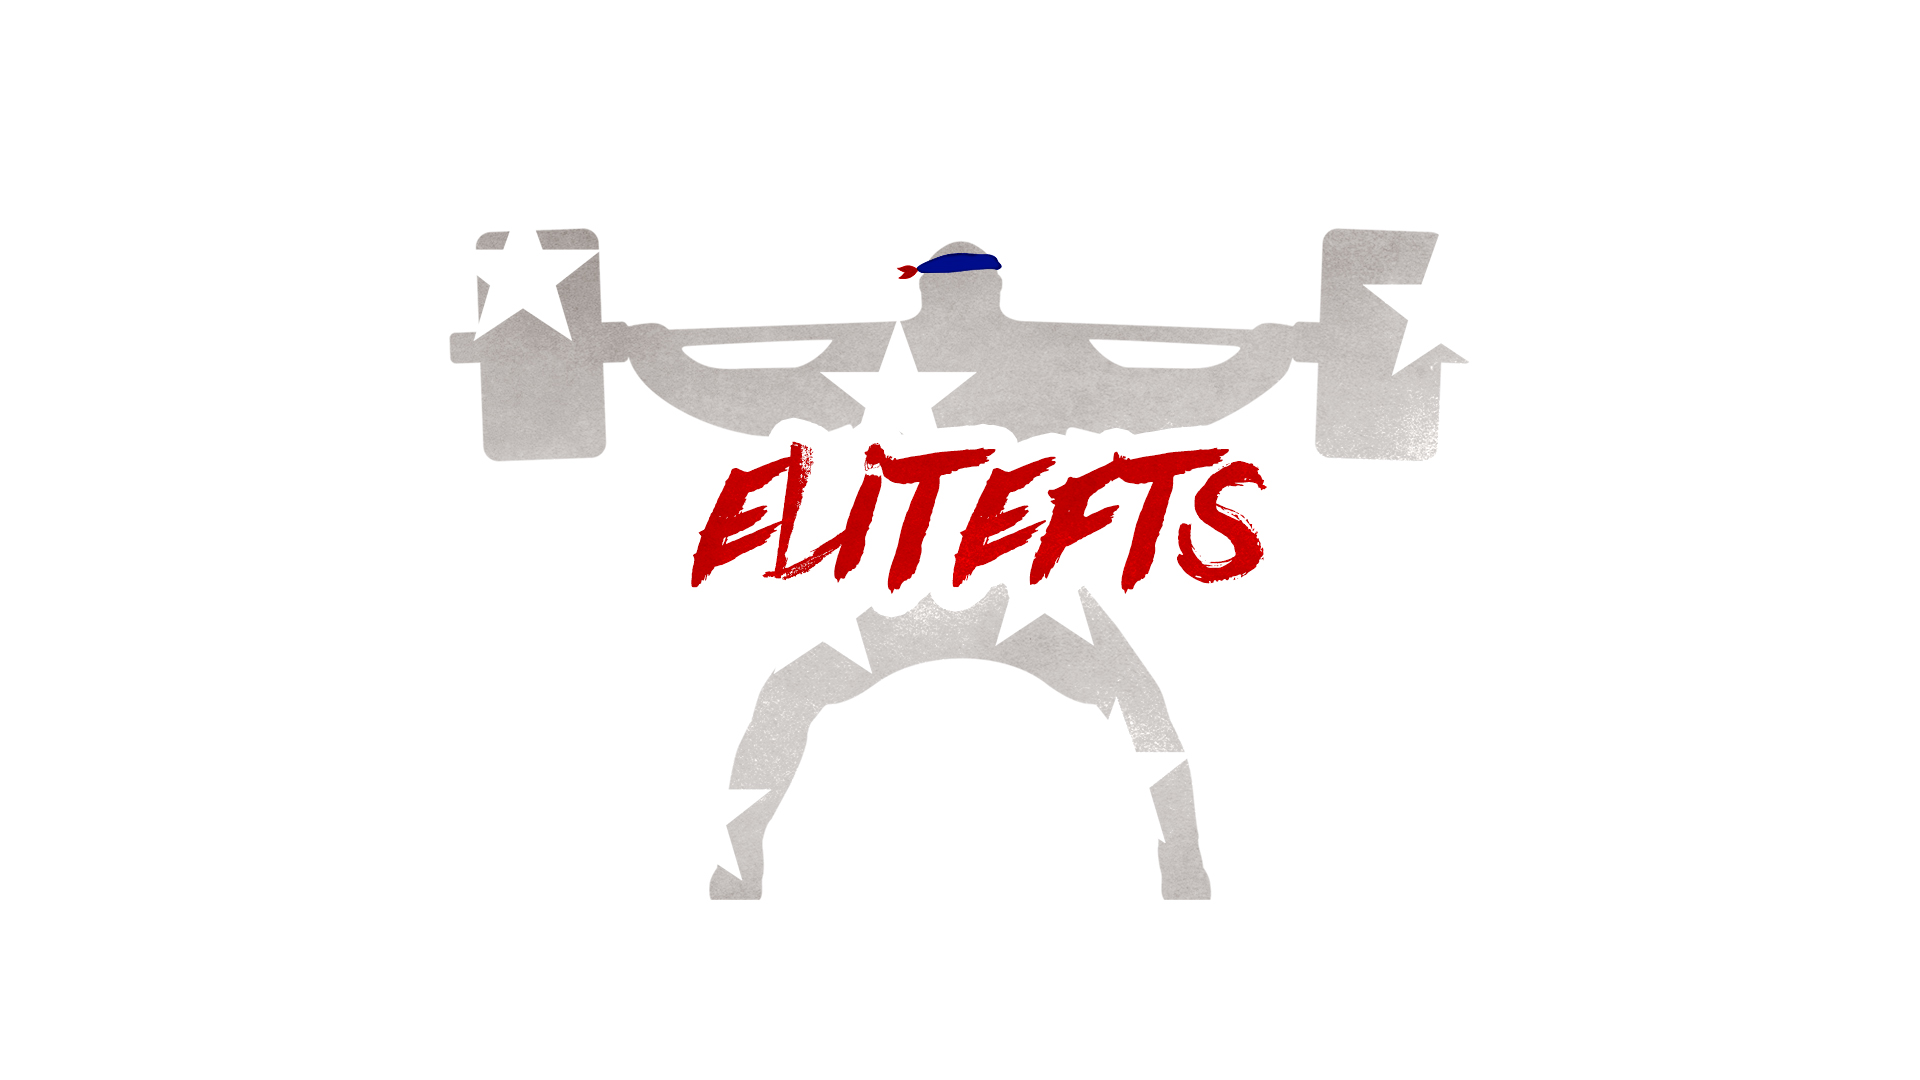 Happy 4th of July from elitefts!